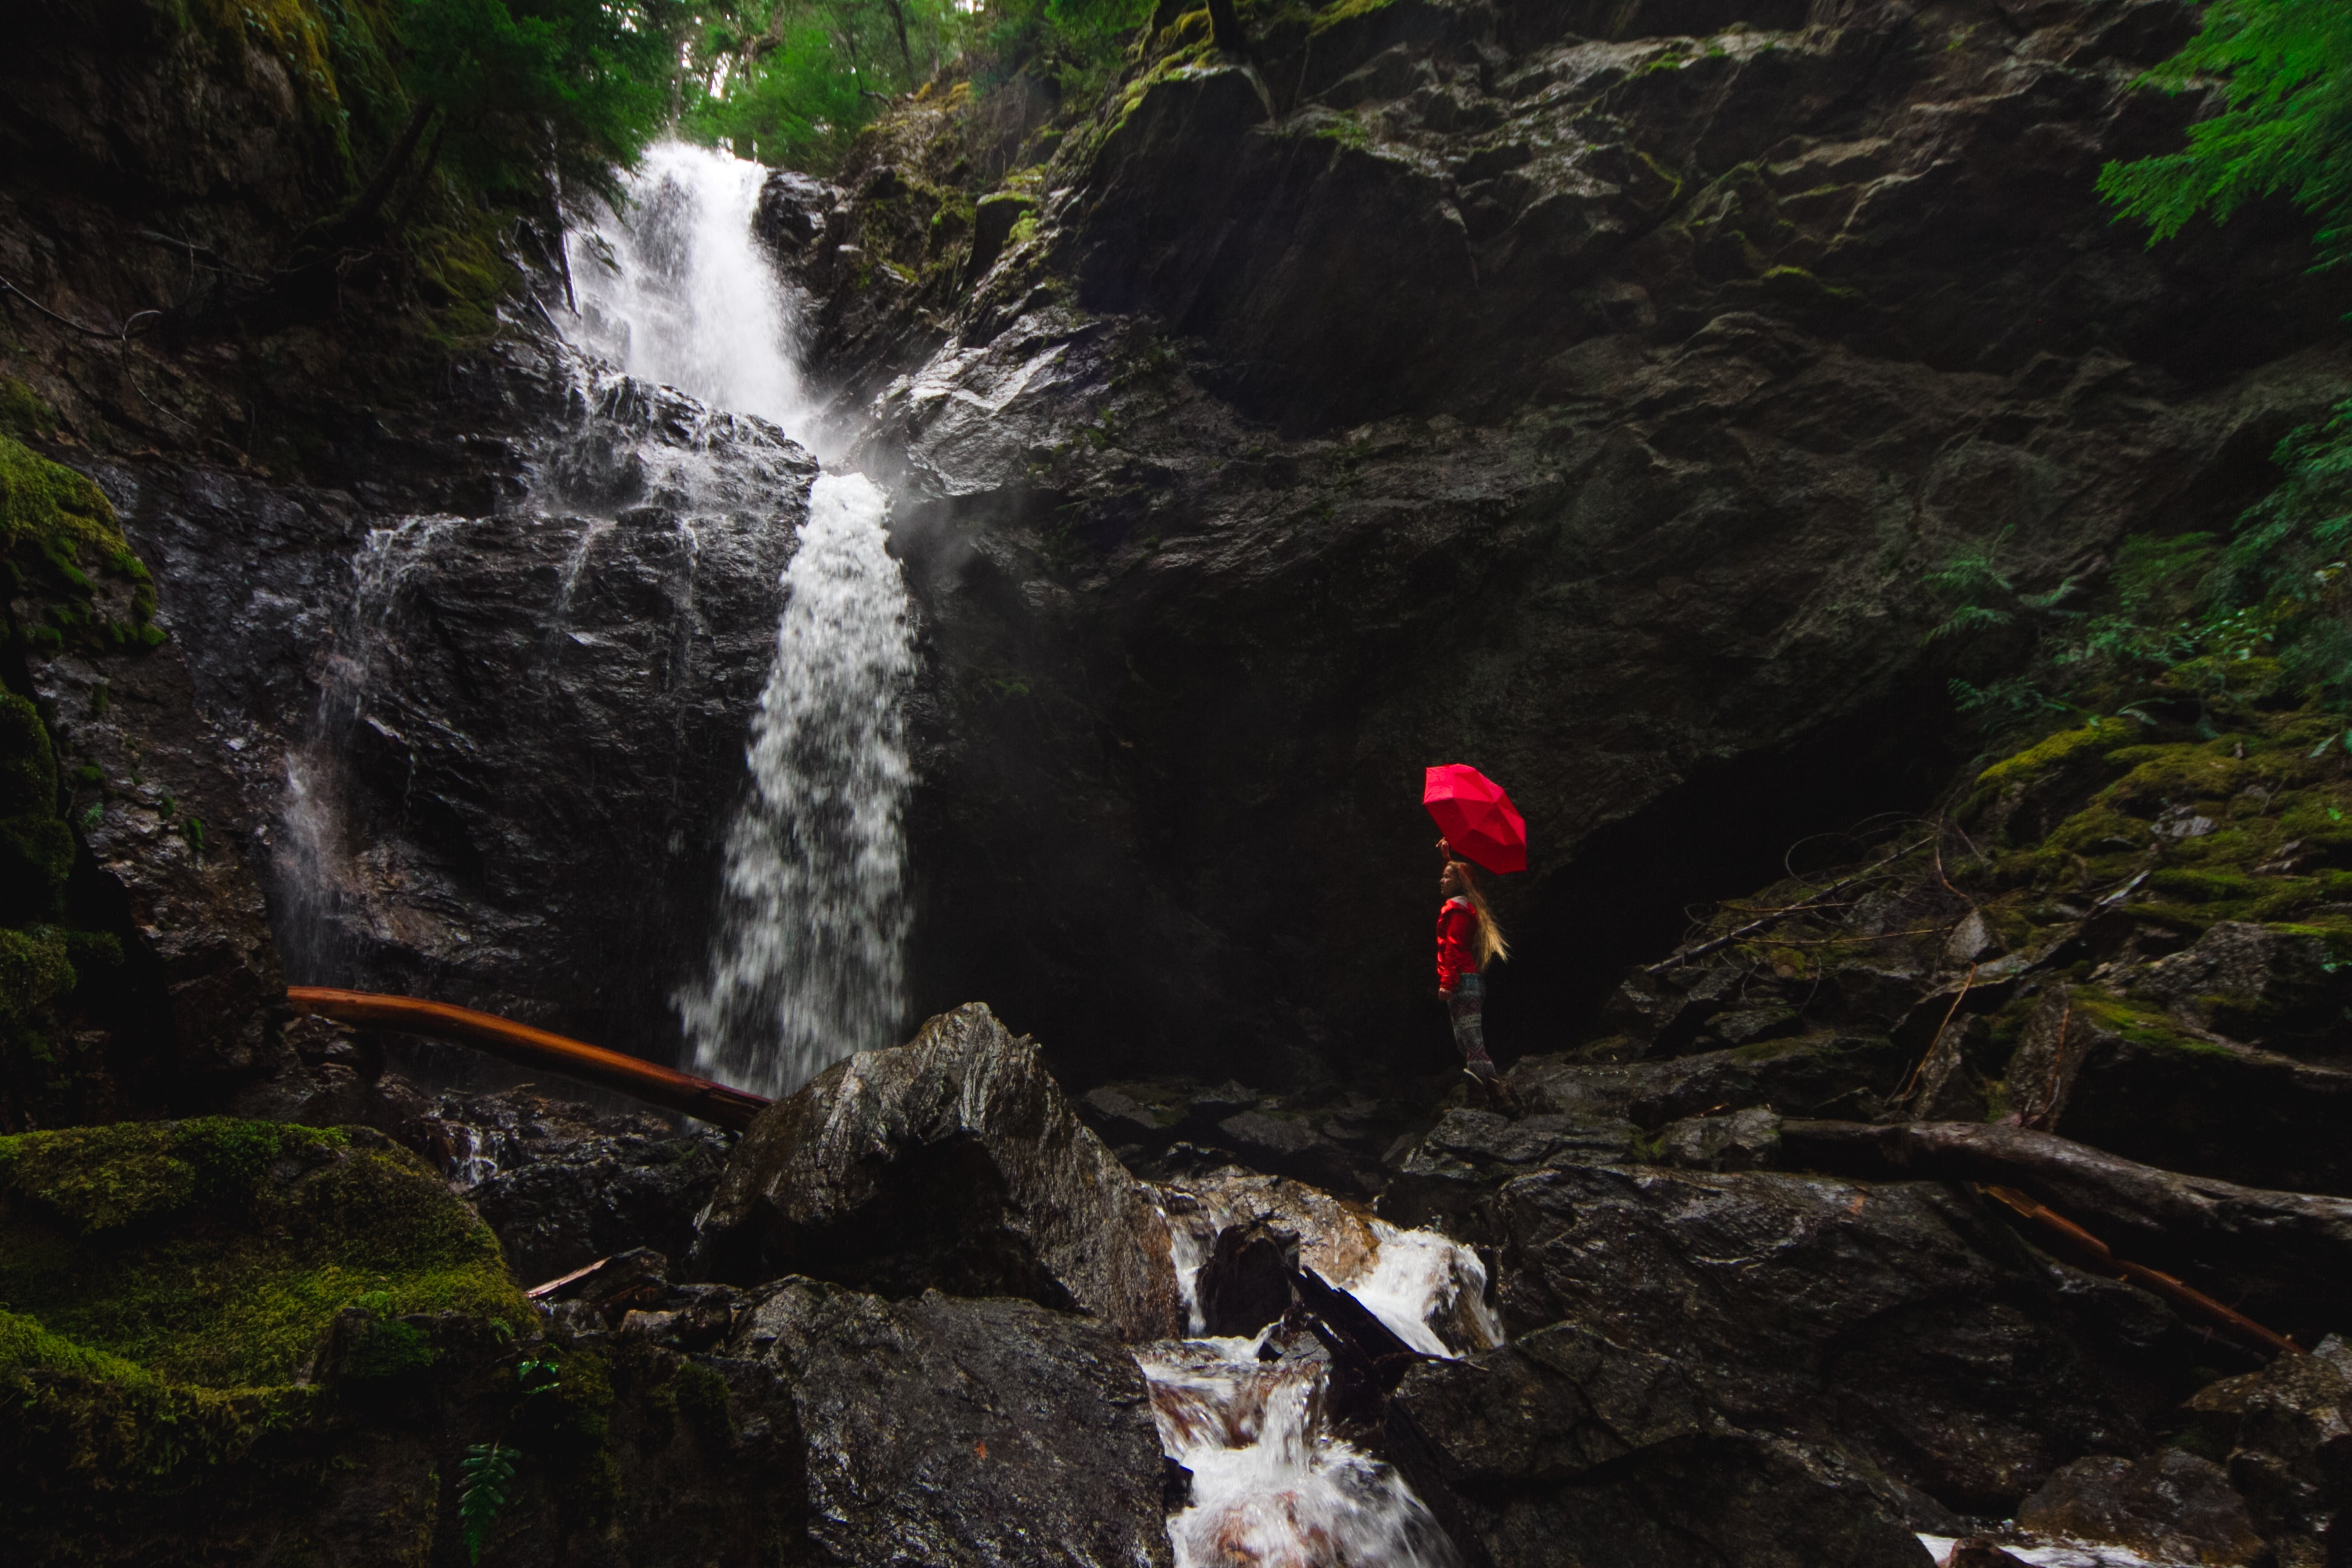 person standing on rock formation under red umbrella beside waterfalls